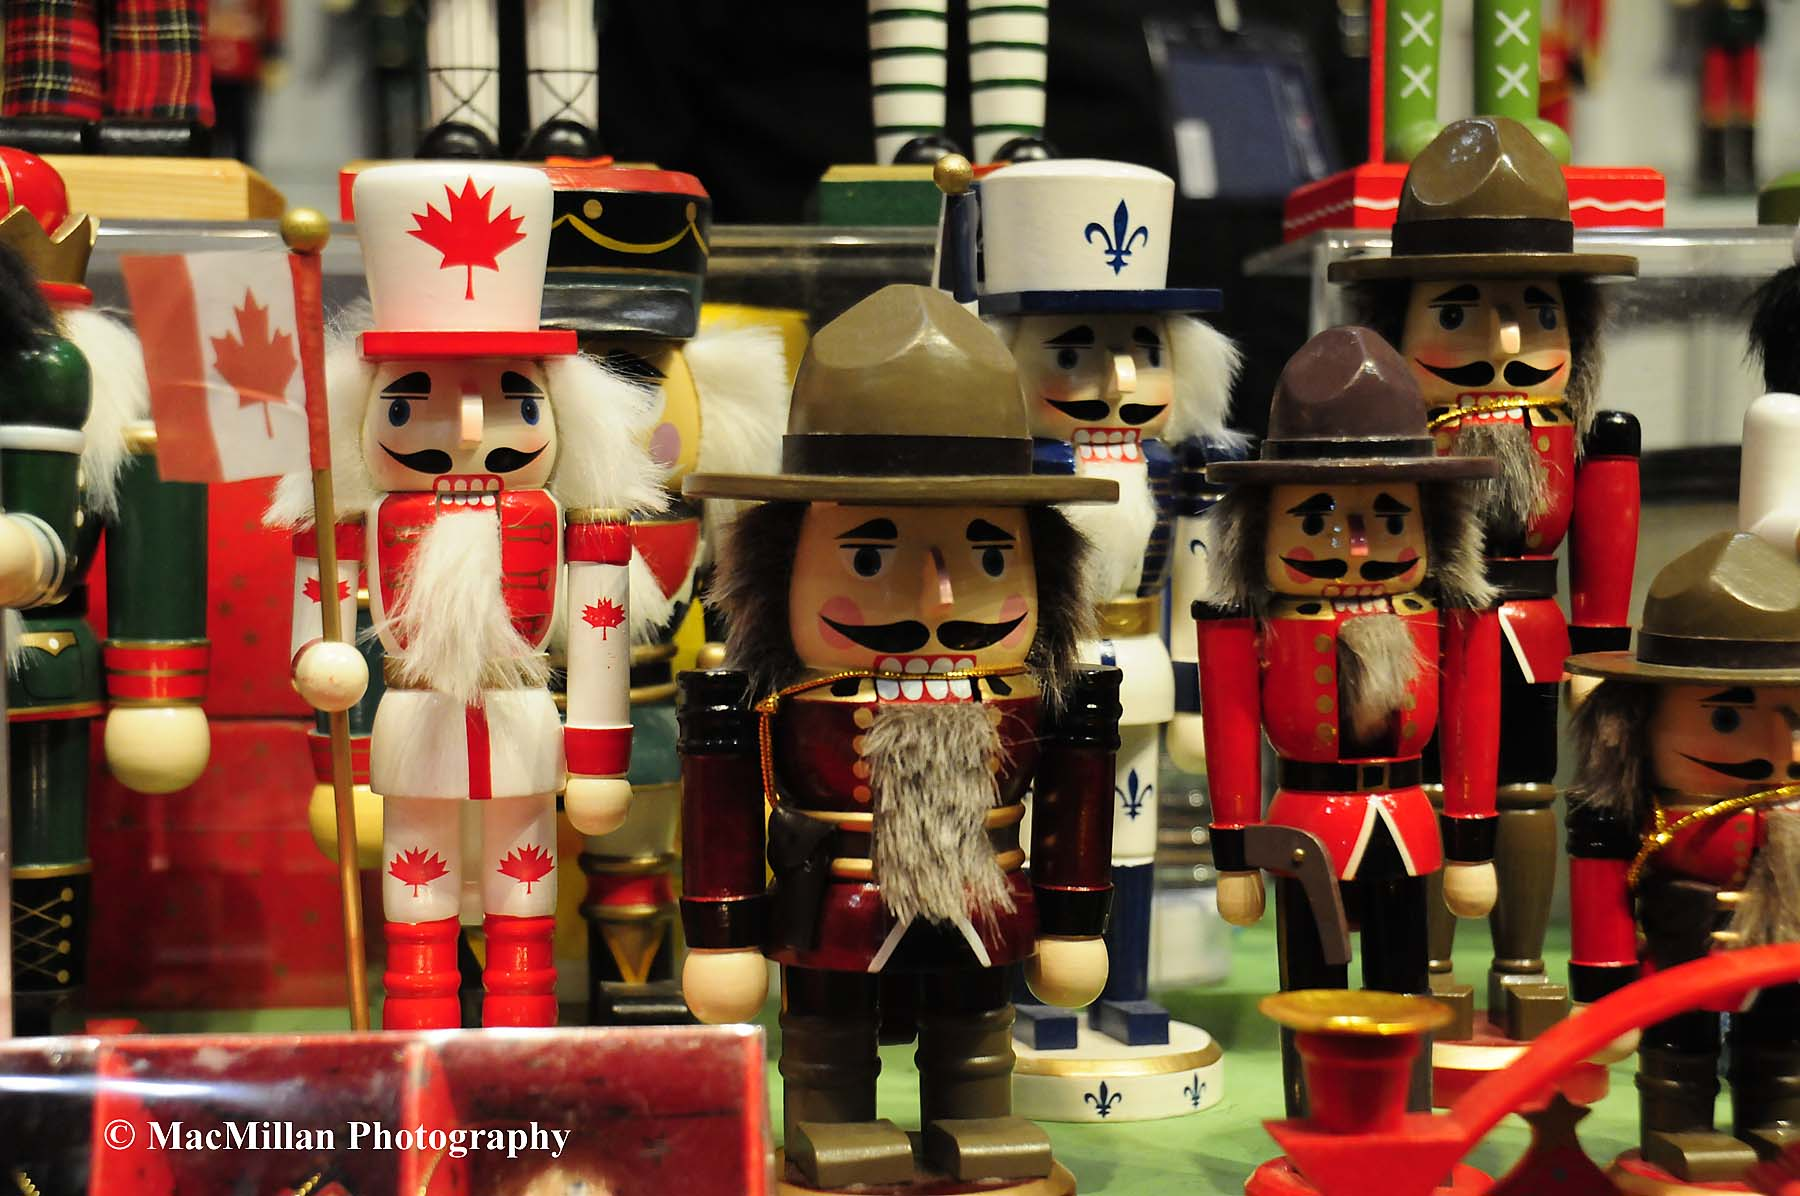 Photo 52 – The Royal Winter Fair shopping opportunities are seemingly endless. This booth featuring Canadian Mountie nutcrackers that seem to smile as people walk by.Photo by Sarah Miller/MacMillan Photography